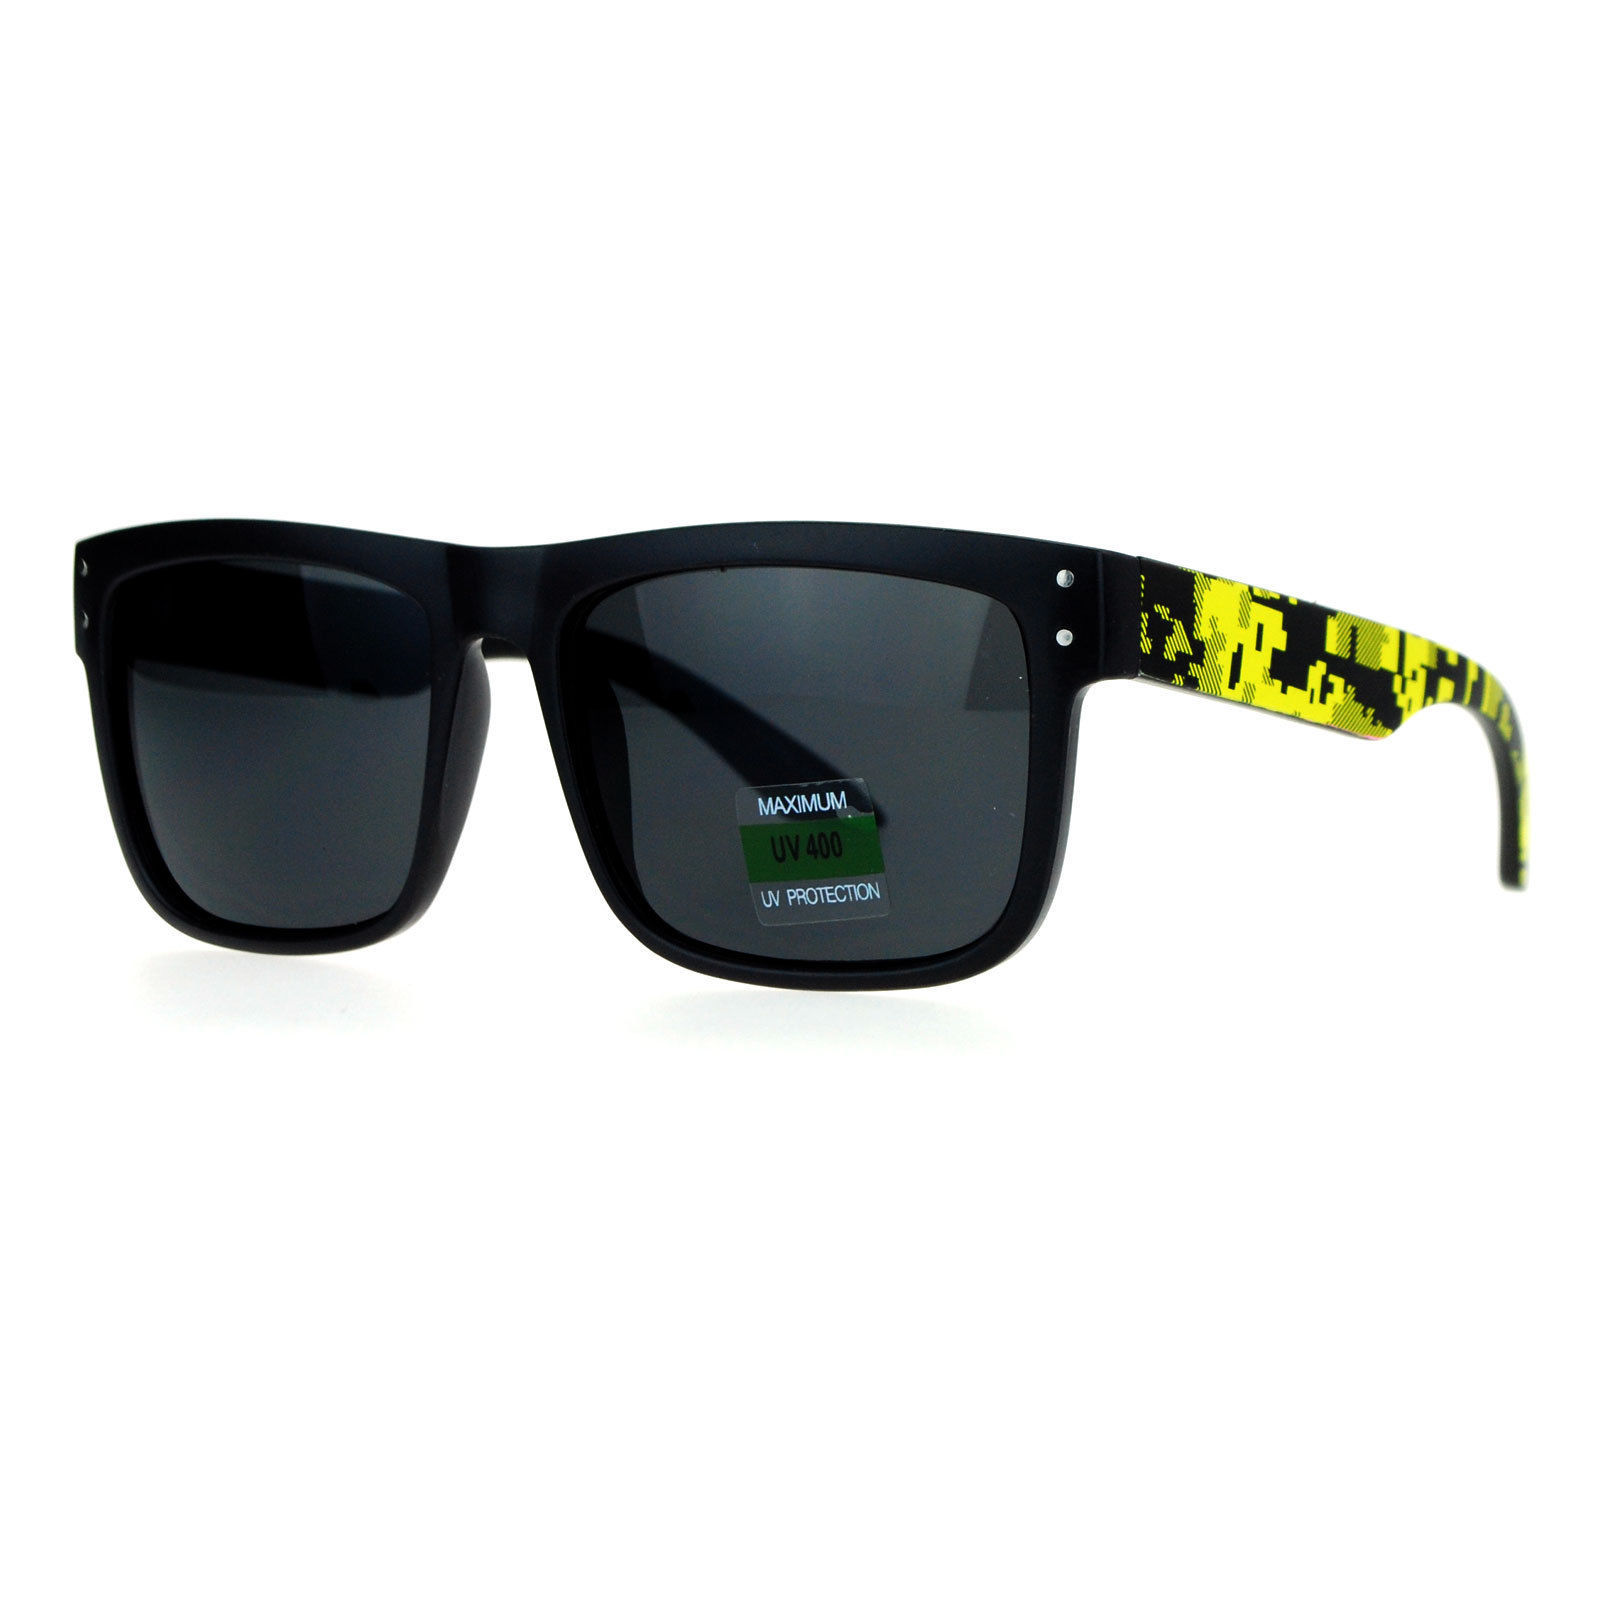 Round Sunglasses For Men in addition Ray Ban Blaze Clubmaster Black Gold in addition Bags Harta Bucuresti Cu Sectoarele further G further Celebrity Sunglasses Clear Frames. on gold ray bans